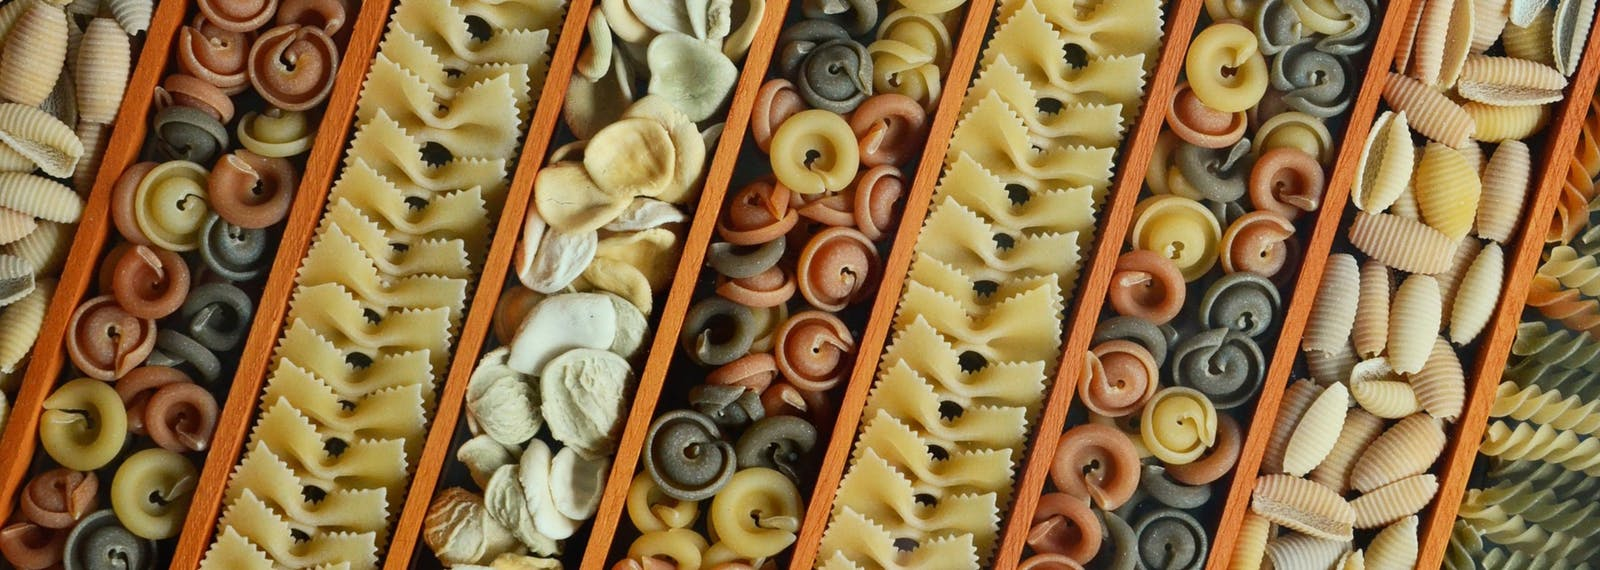 Can you imagine life without Pasta?